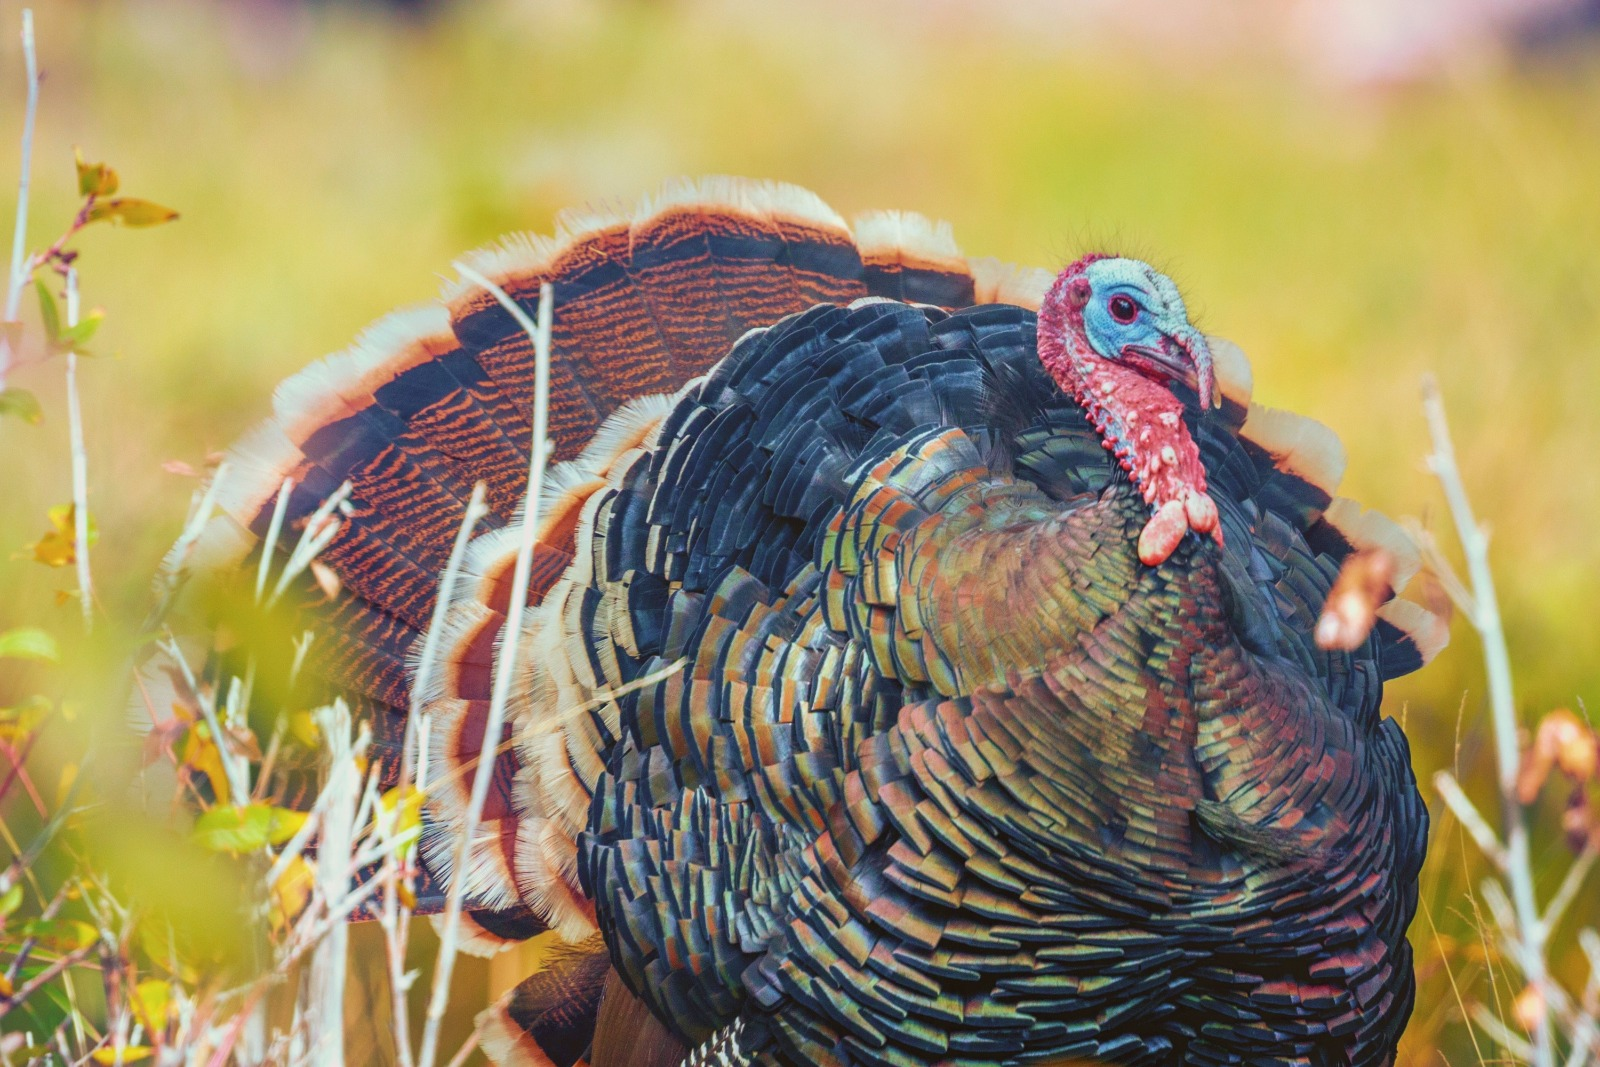 Turkeys: the cruelty behind Christmas dinner